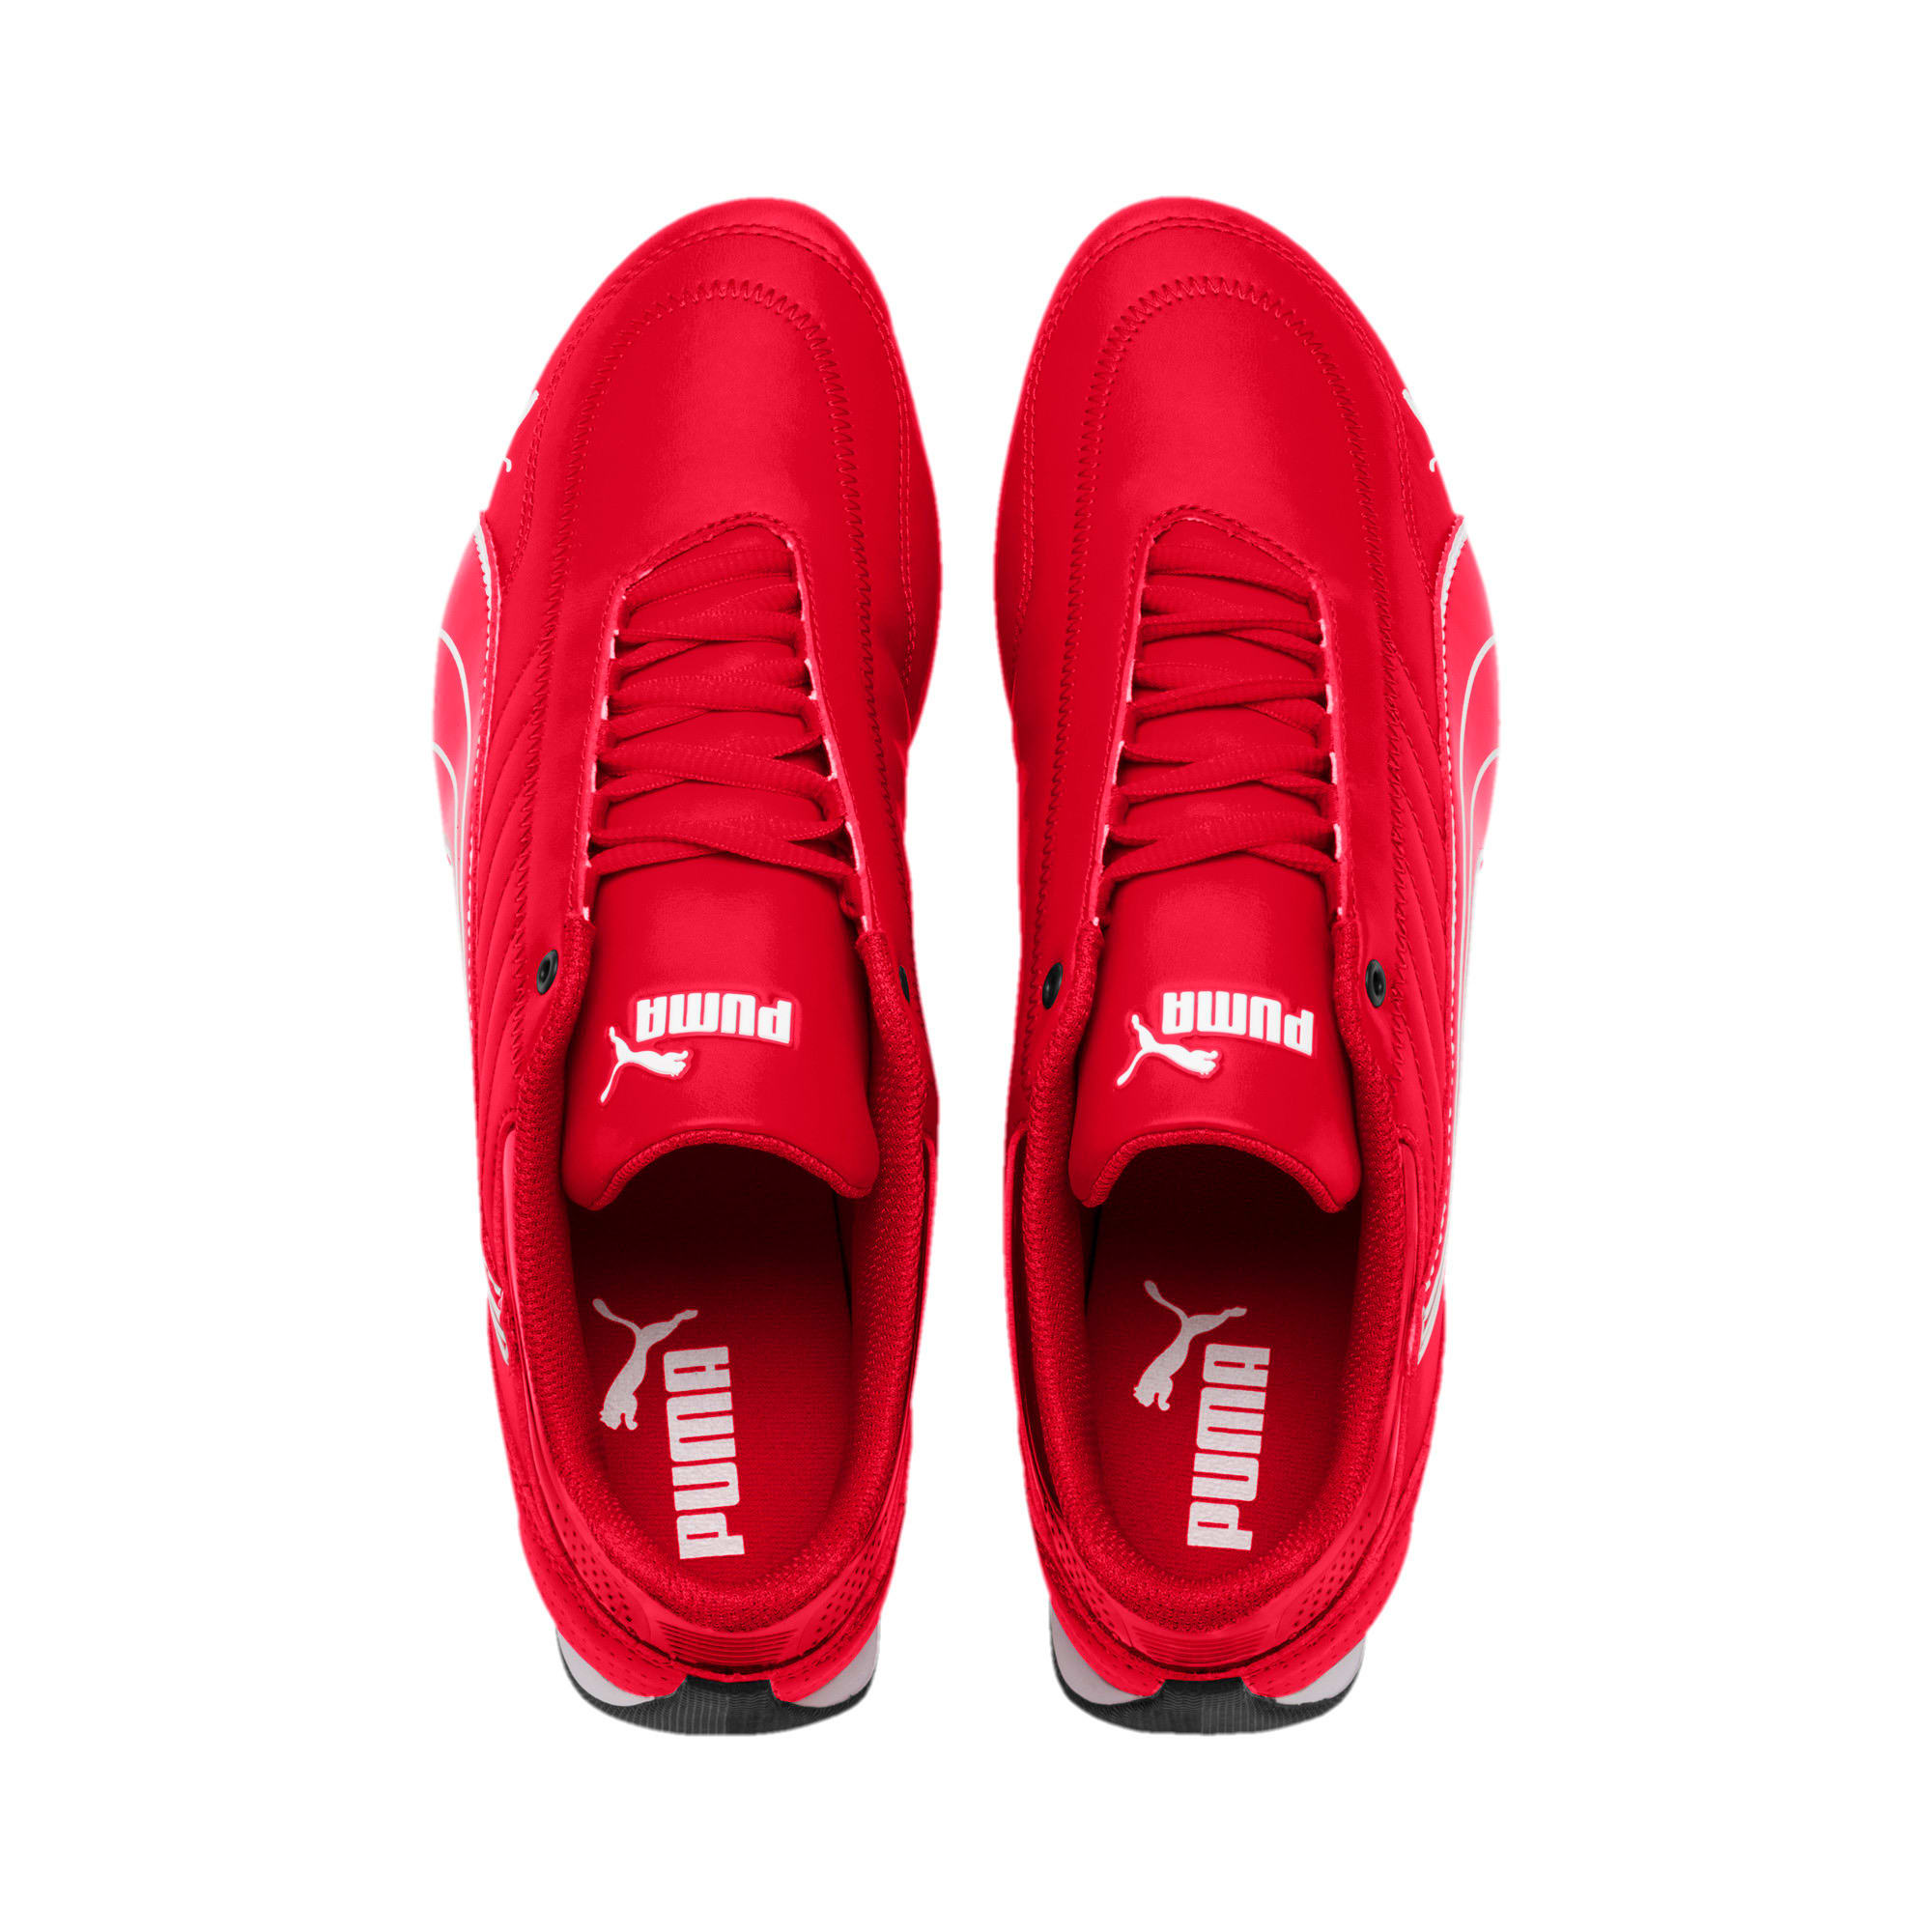 Thumbnail 7 of Ferrari Future Kart Cat Trainers, Rosso Corsa-Puma Black, medium